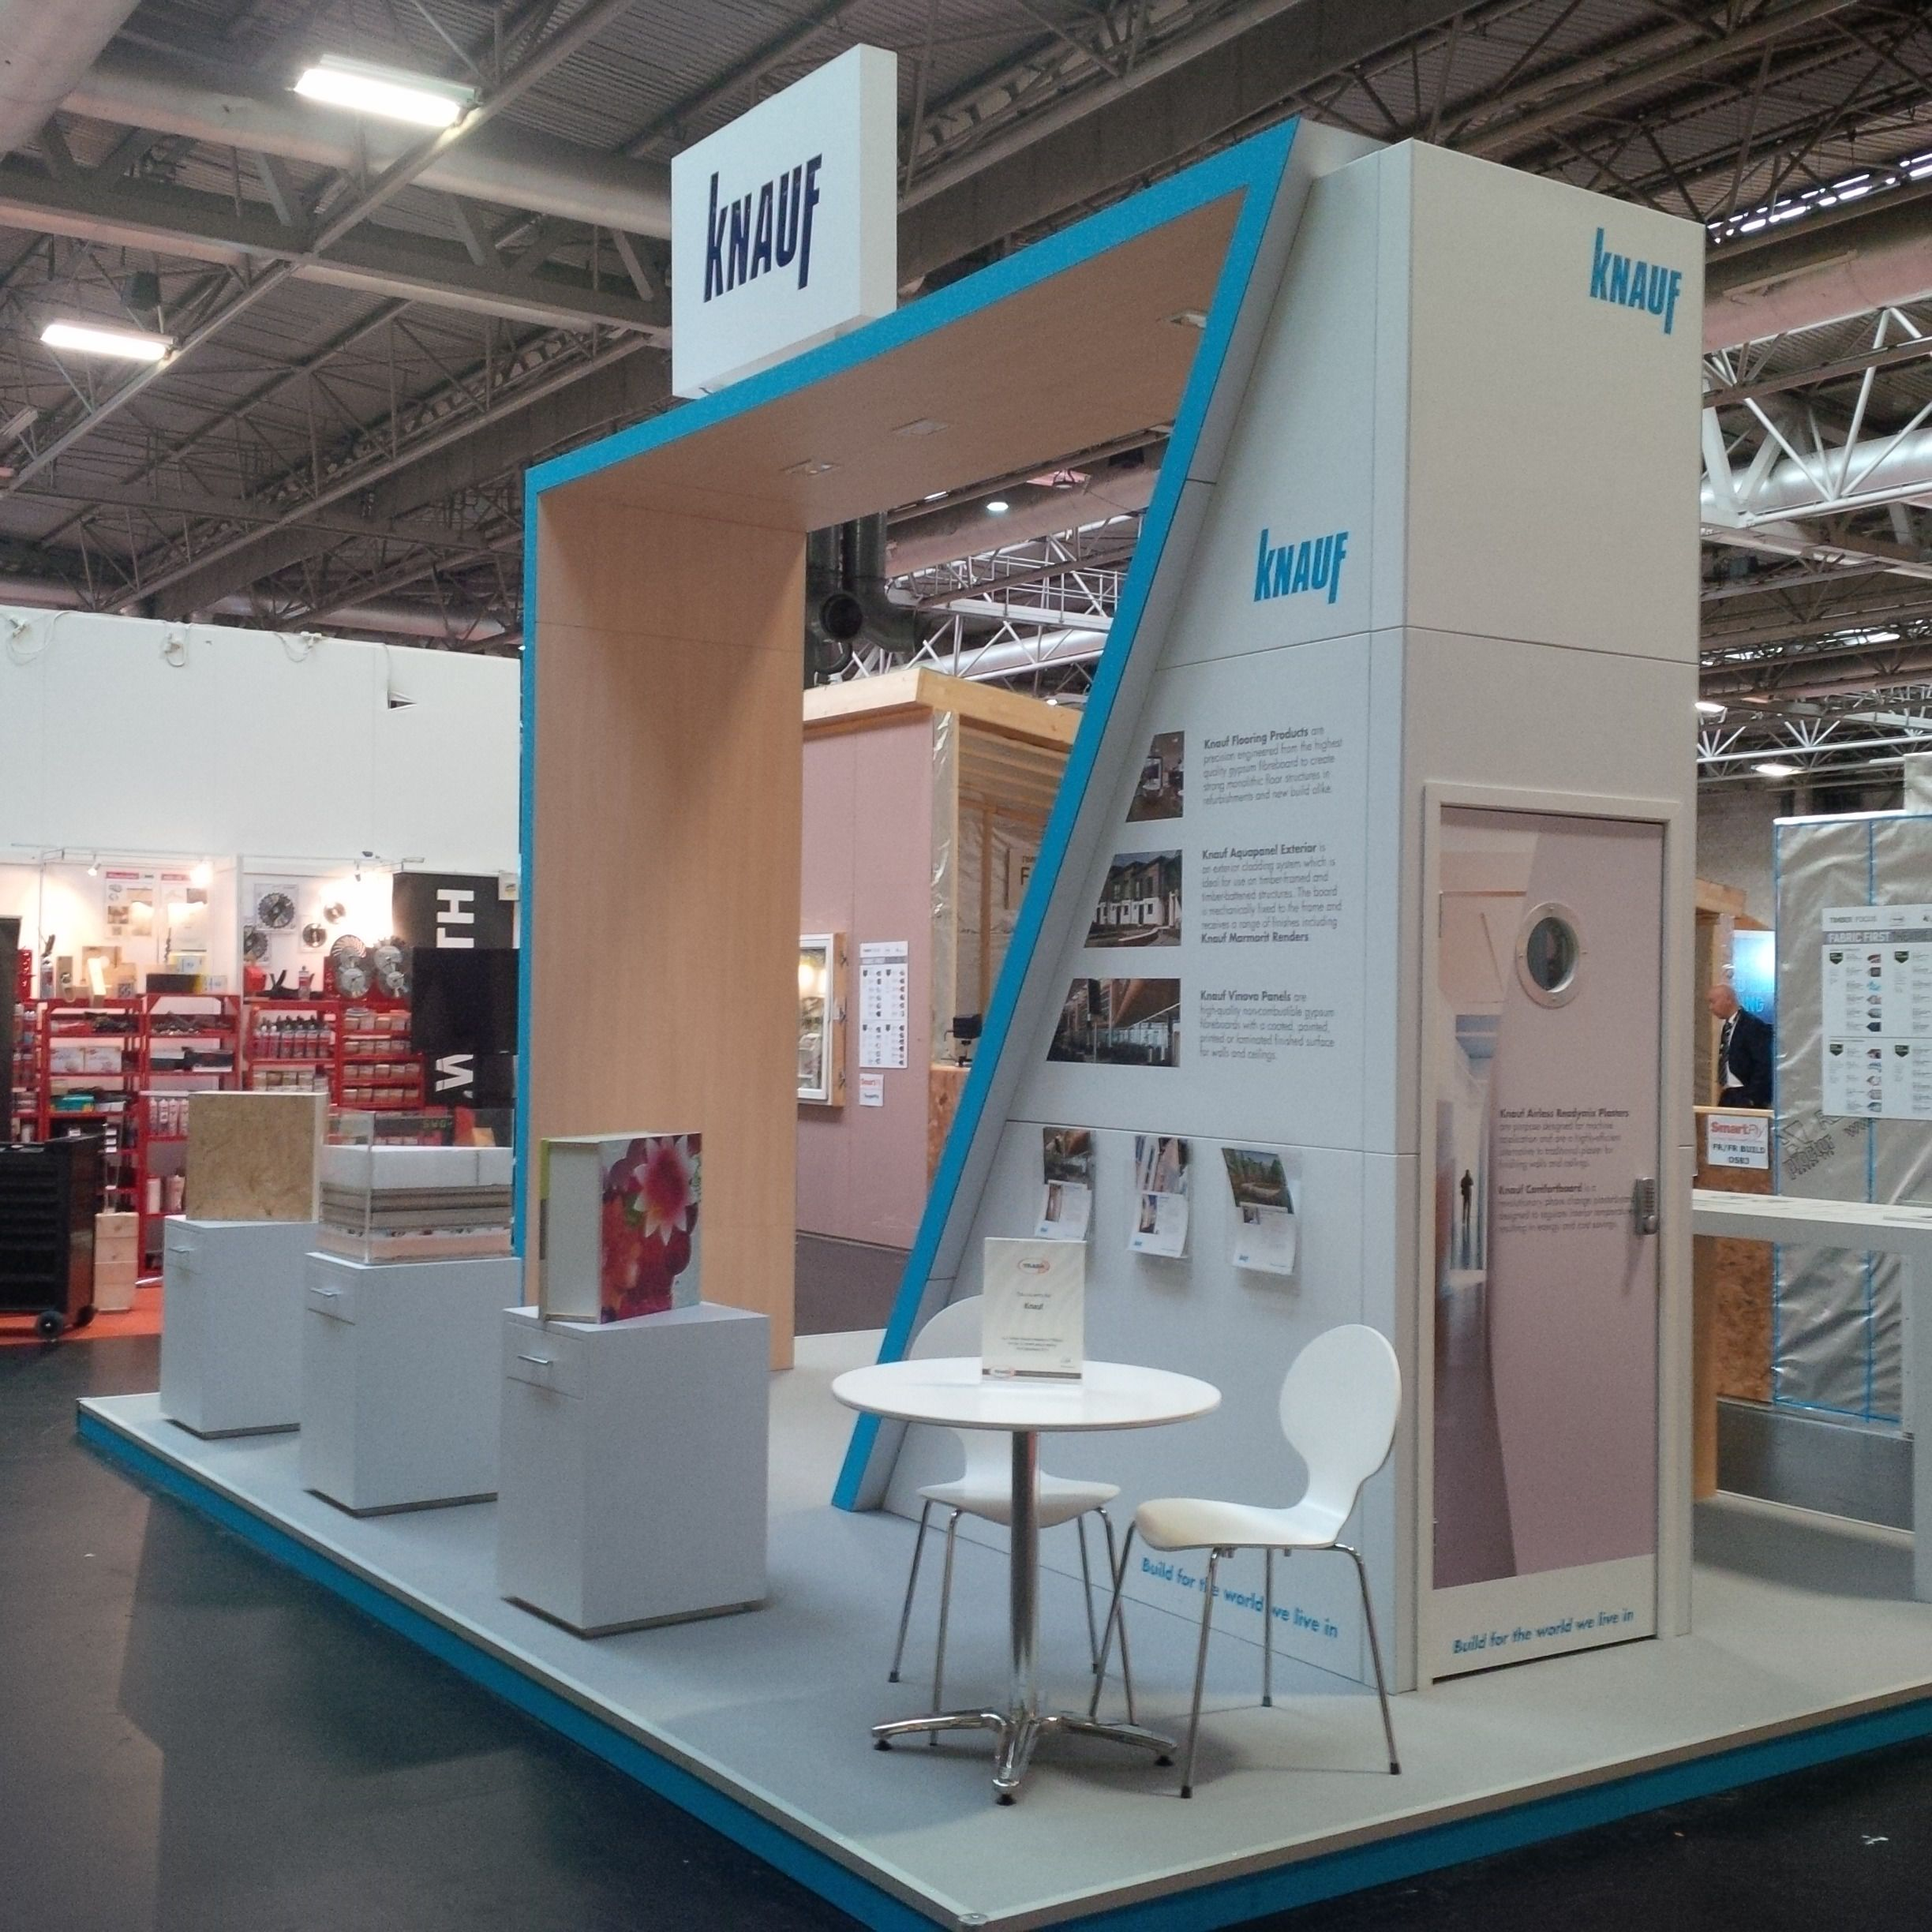 Exhibition Stand Design And Build Dubai : Pin by luke c smith on interiors exhibitions